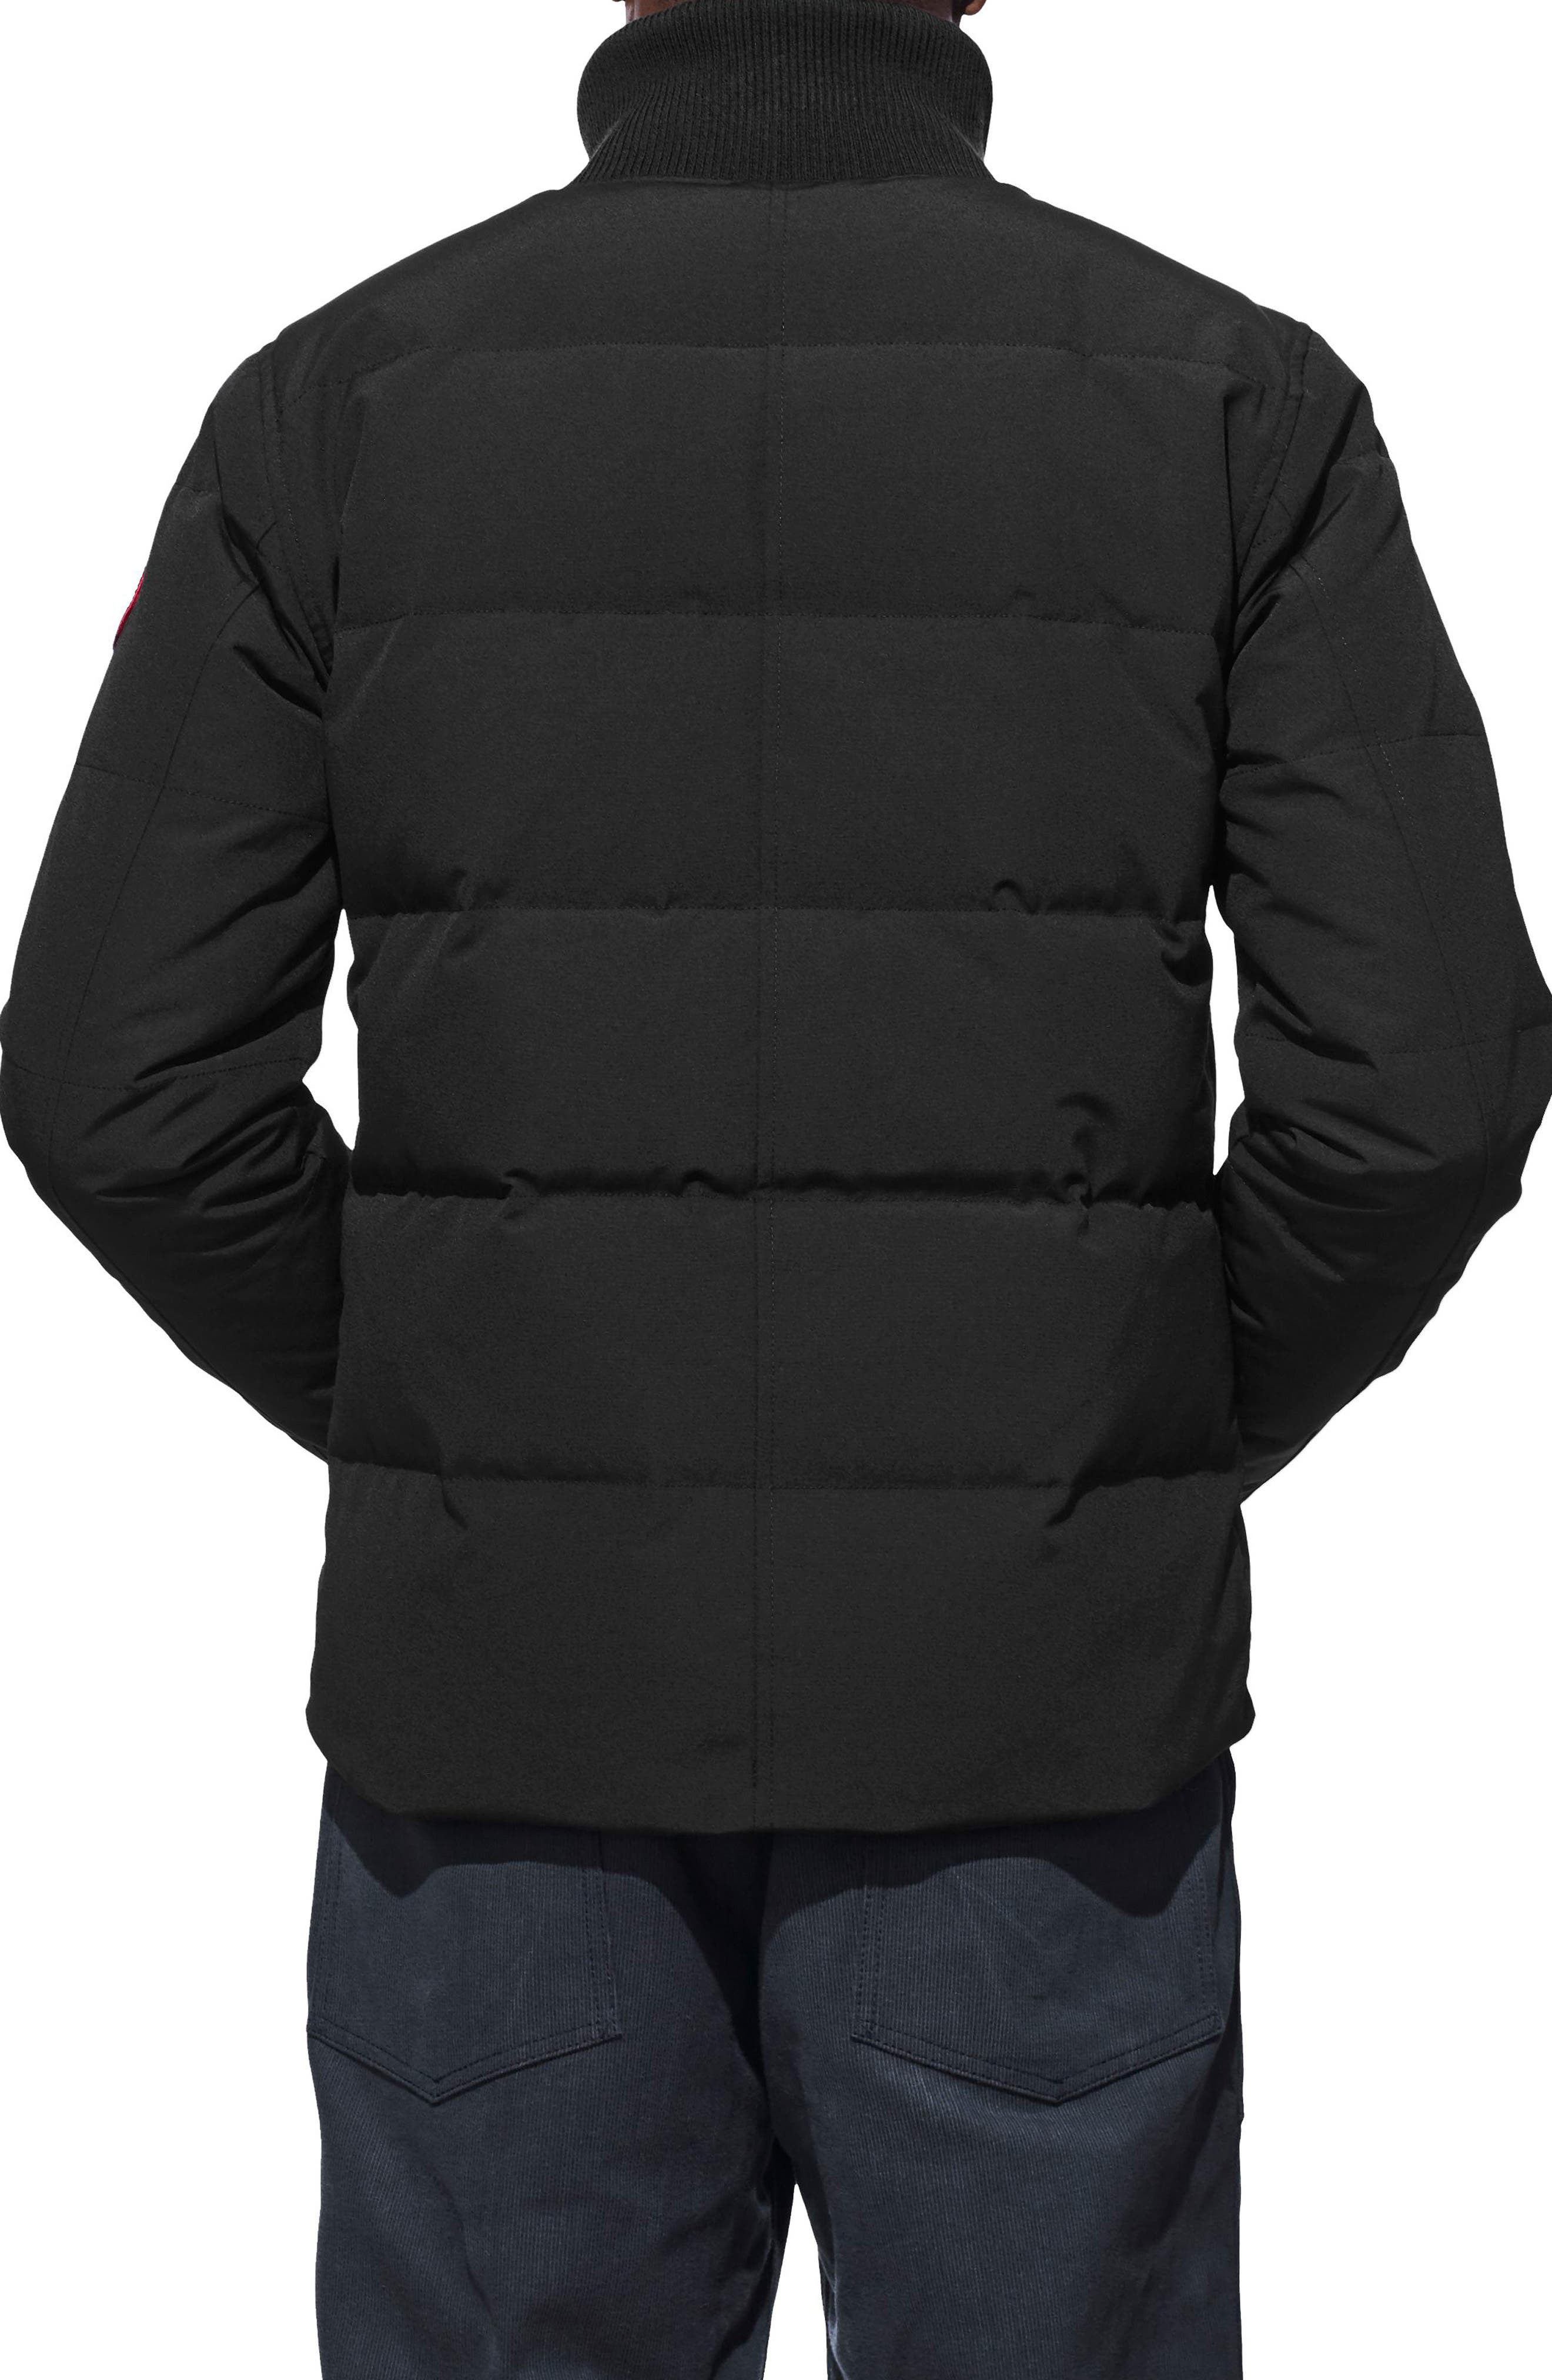 'Woolford' Slim Fit Down Bomber Jacket,                             Alternate thumbnail 2, color,                             BLACK